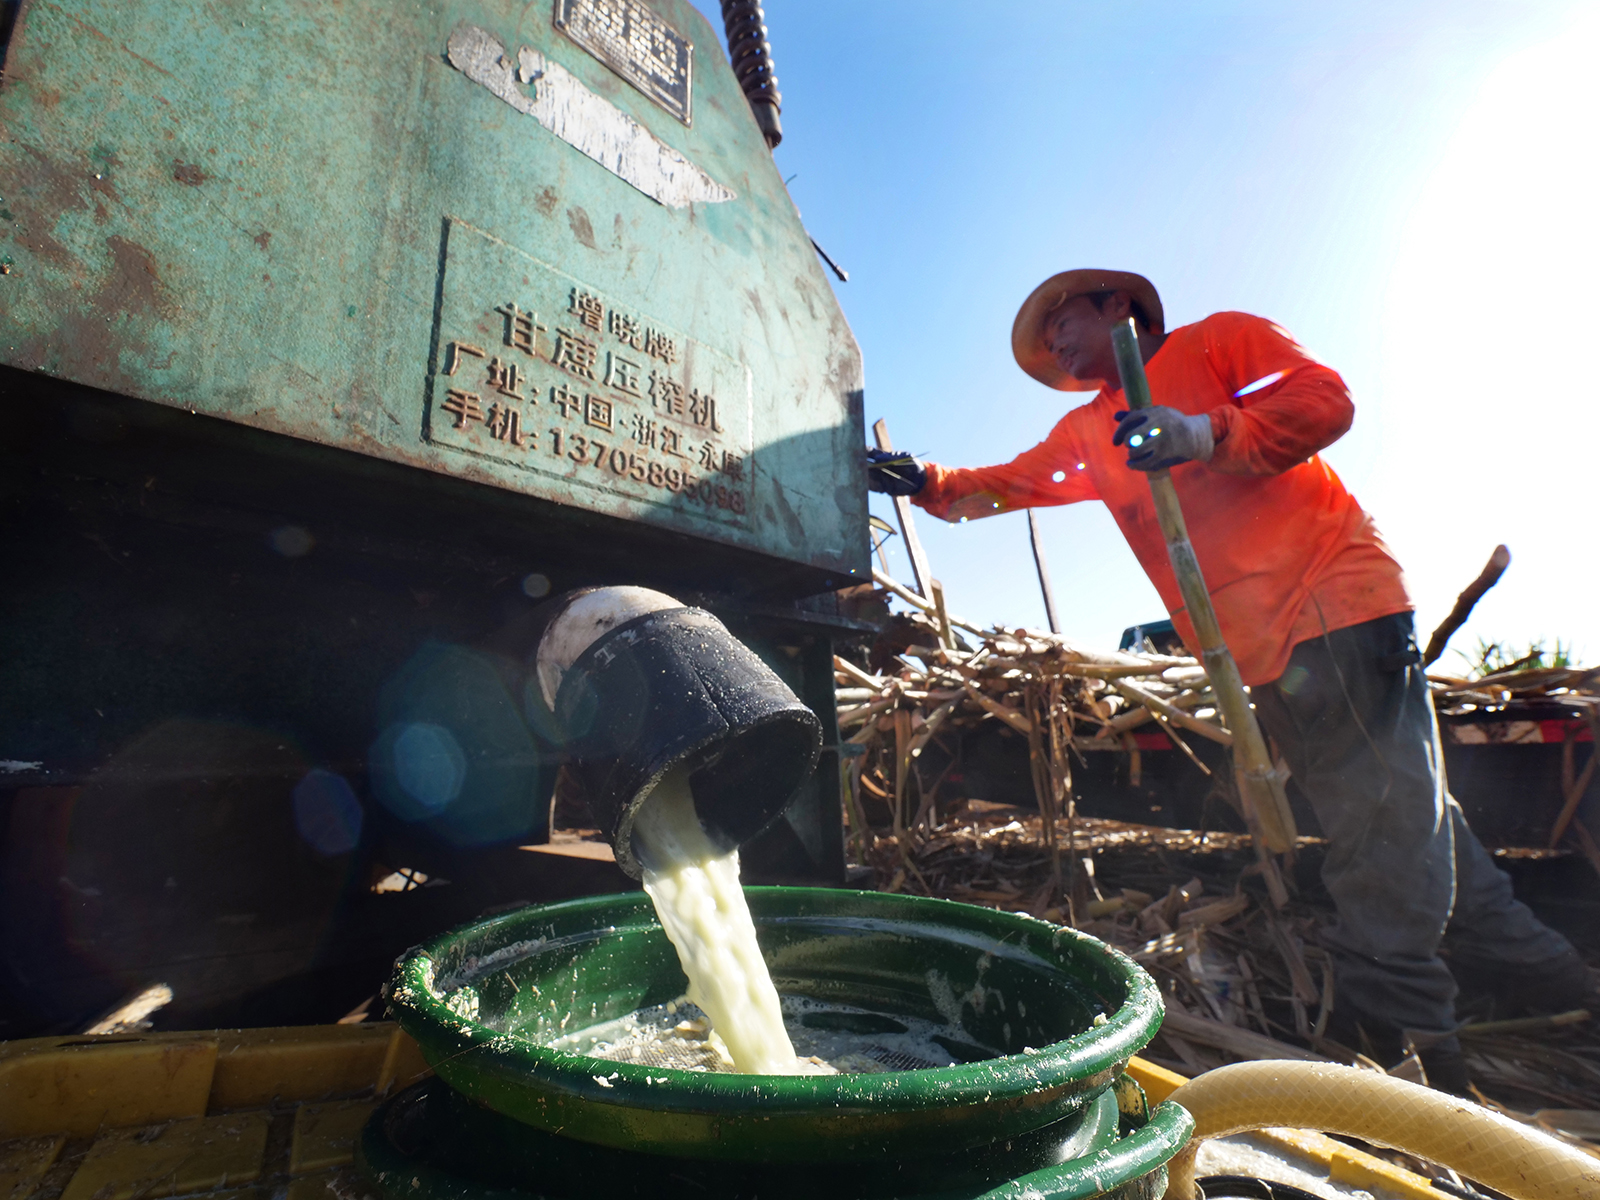 <p>Sugar cane juice pours into a bucket as cane stalks are fed into the mill press.</p>